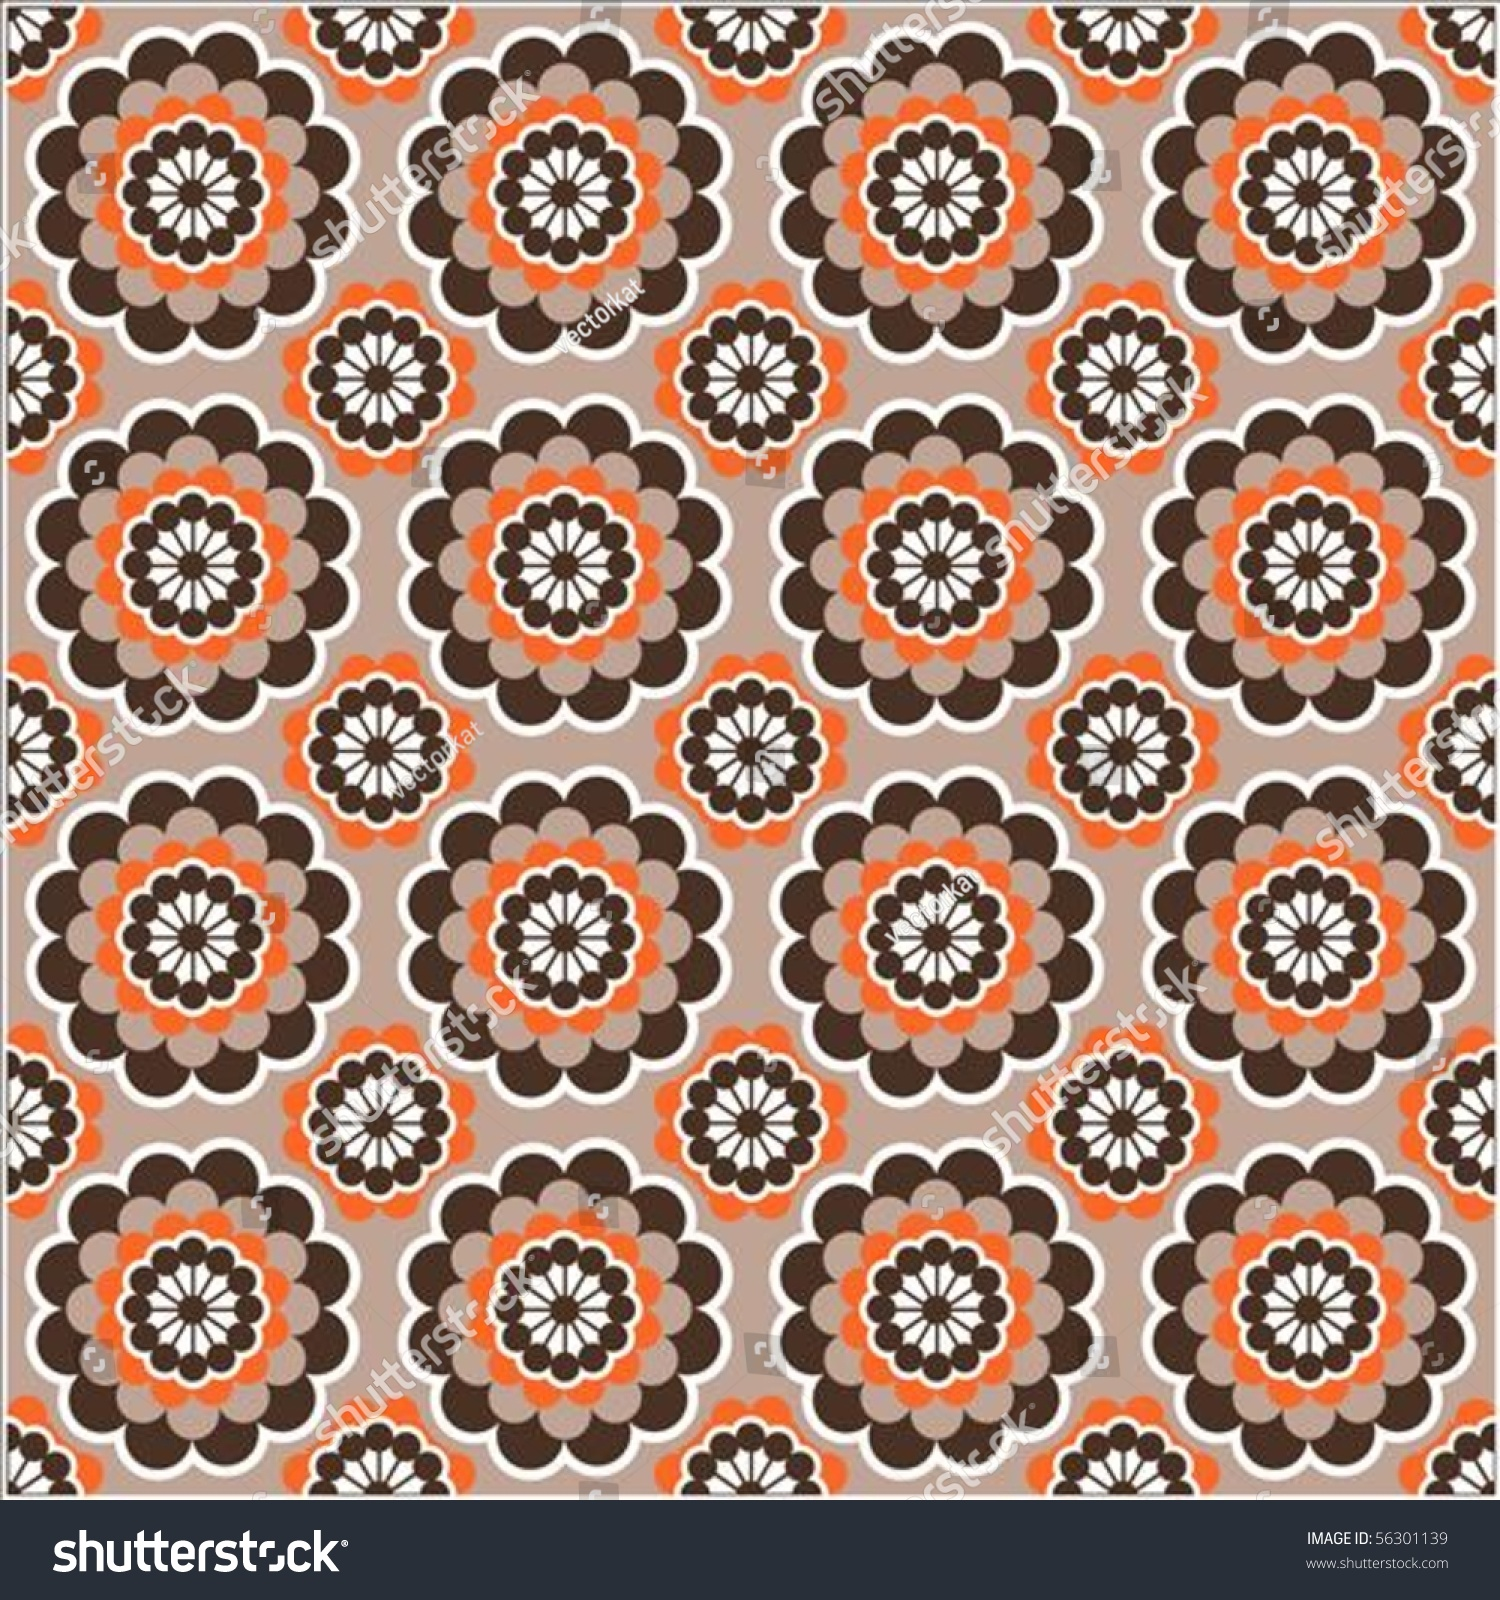 Thanksgiving Themed Pictures Stock Vector Repeating Thanksgiving Themed Vector Background Pattern